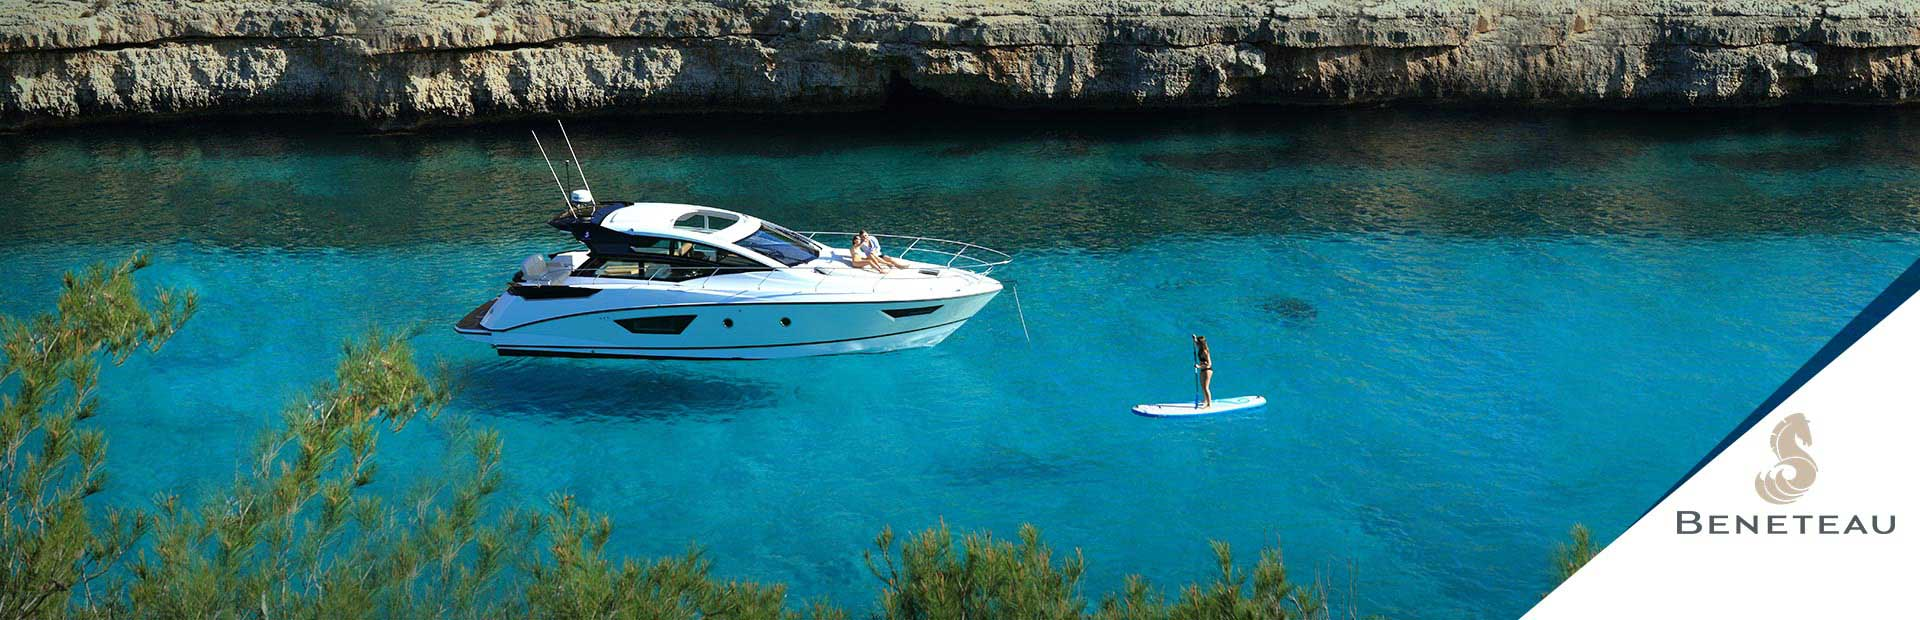 Beneteau Boats: Click here for details.